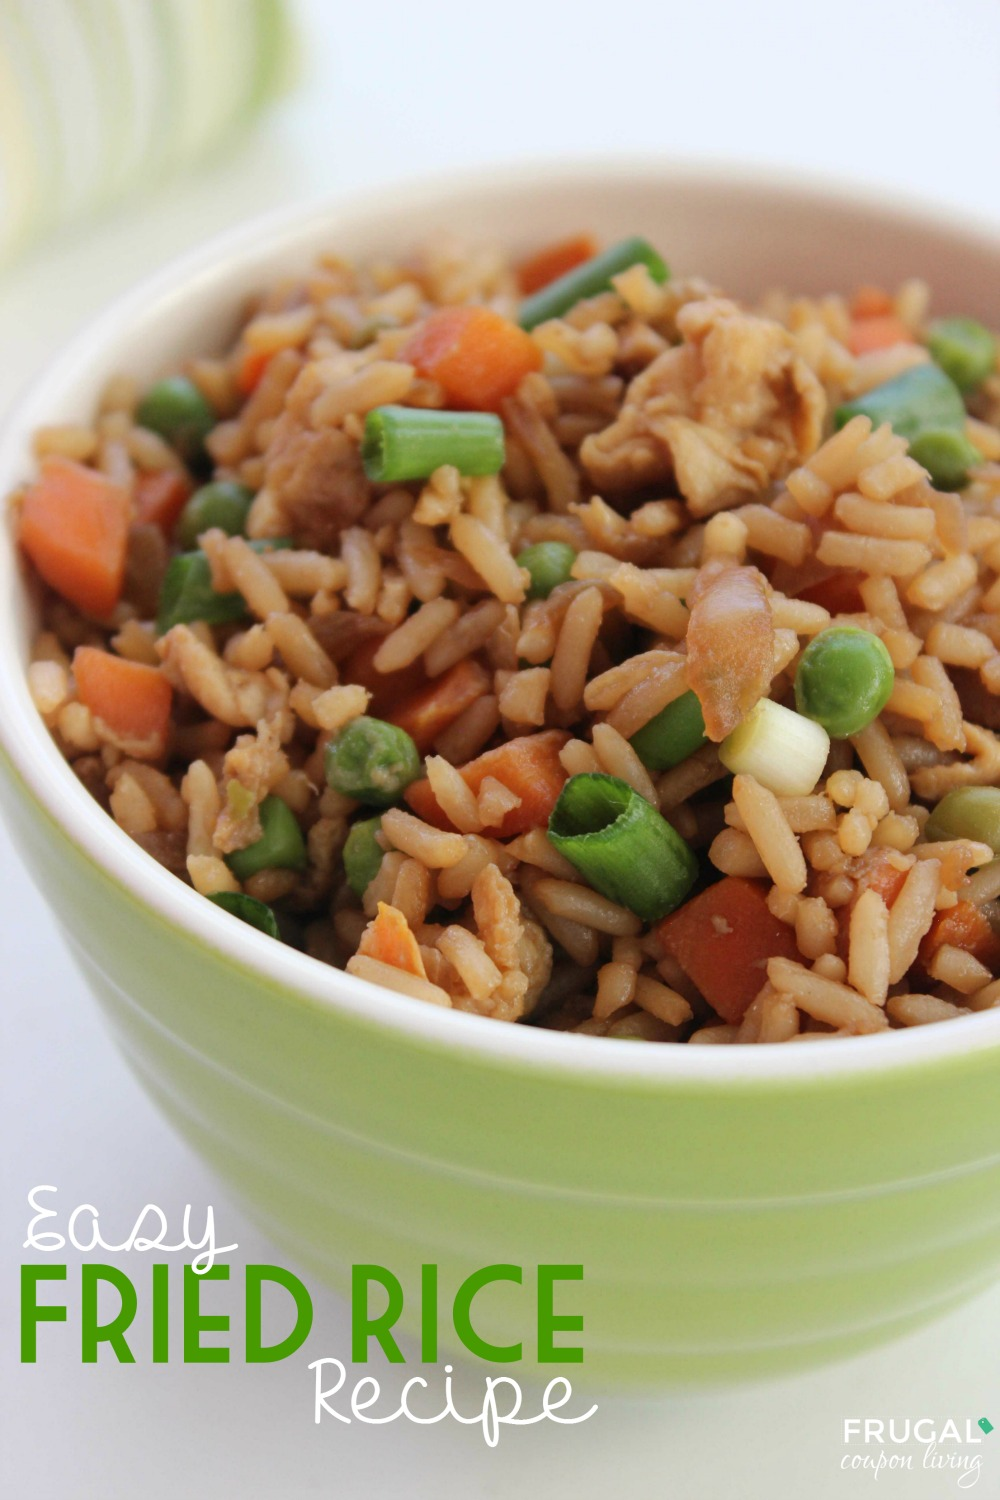 easy-fried-rice-recipe-frugal-coupon-living